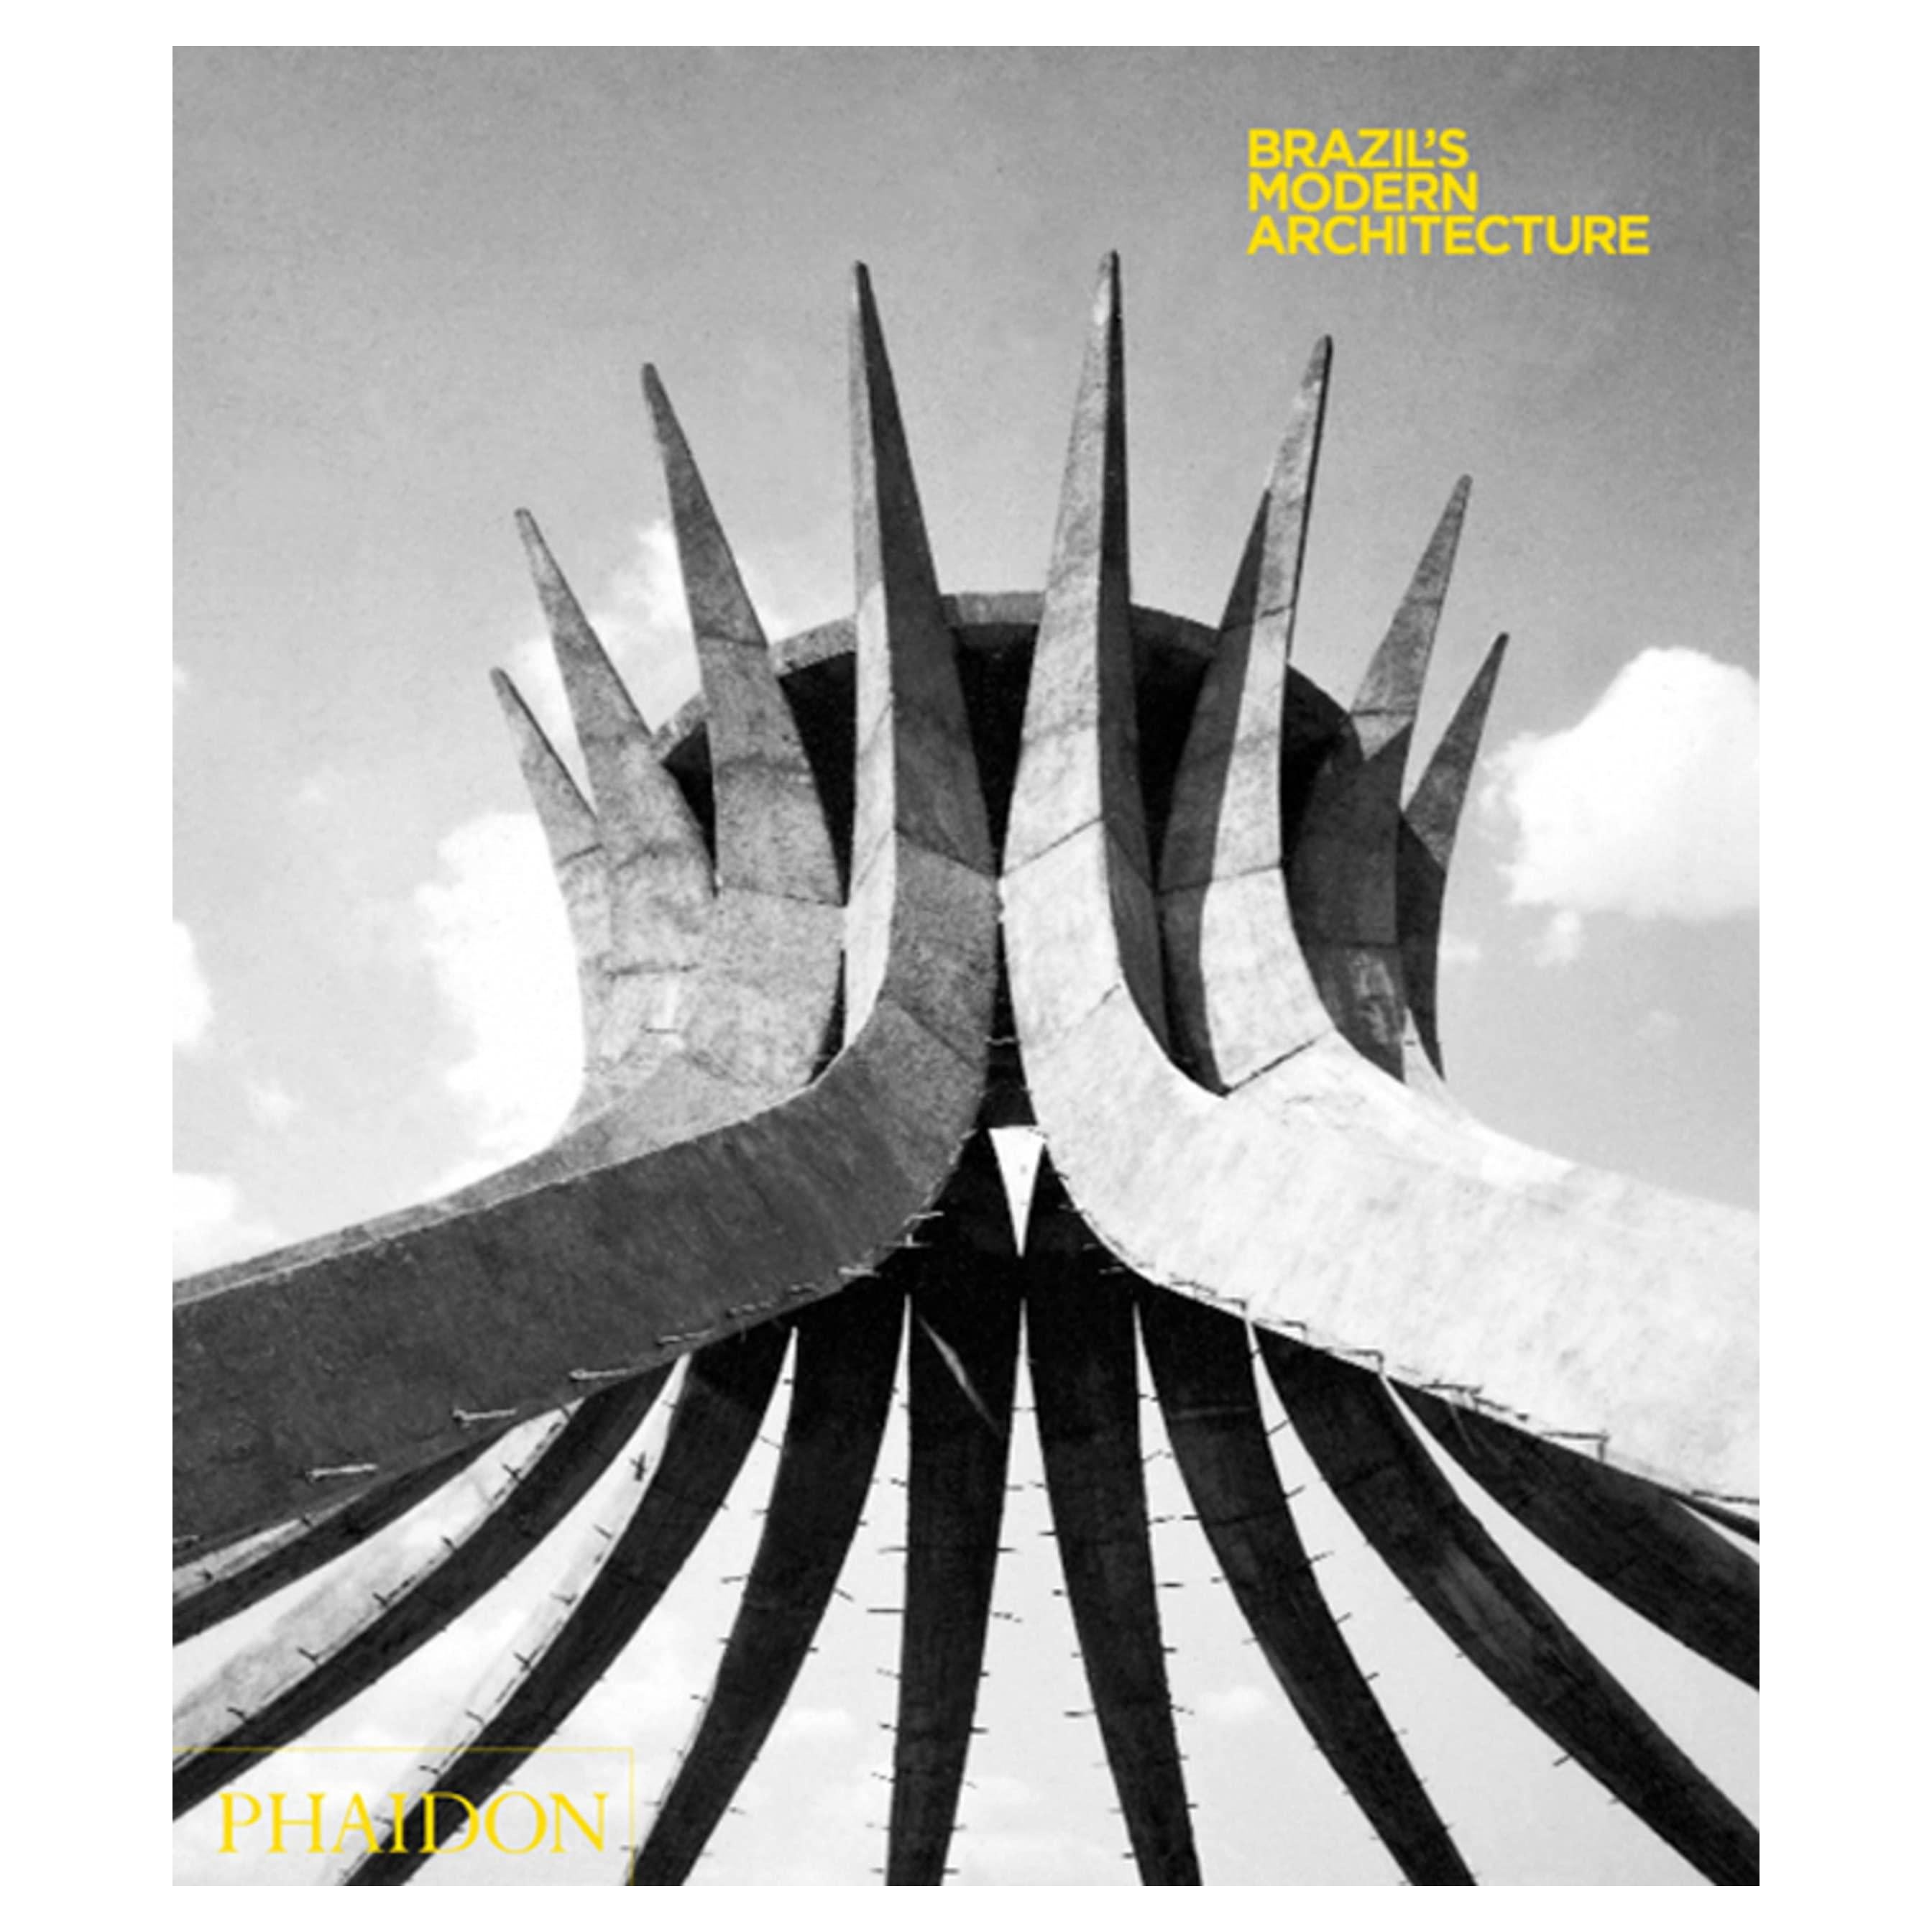 In Stock in Los Angeles, Brazil's Modern Architecture by Elisabetta Andreoli